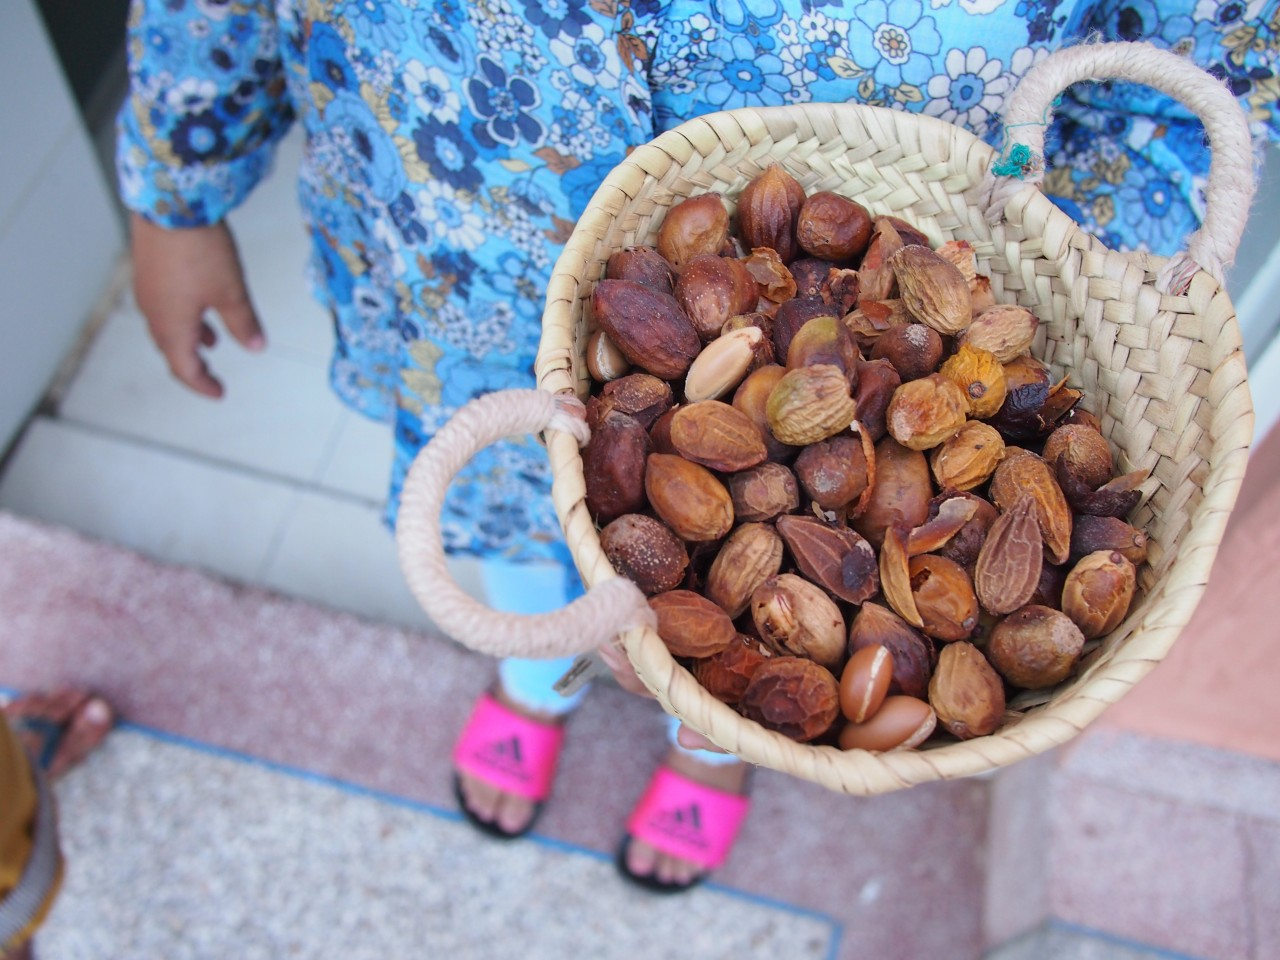 Growing argan trees and beekeeping in Morocco – and how can crowdfunding help?